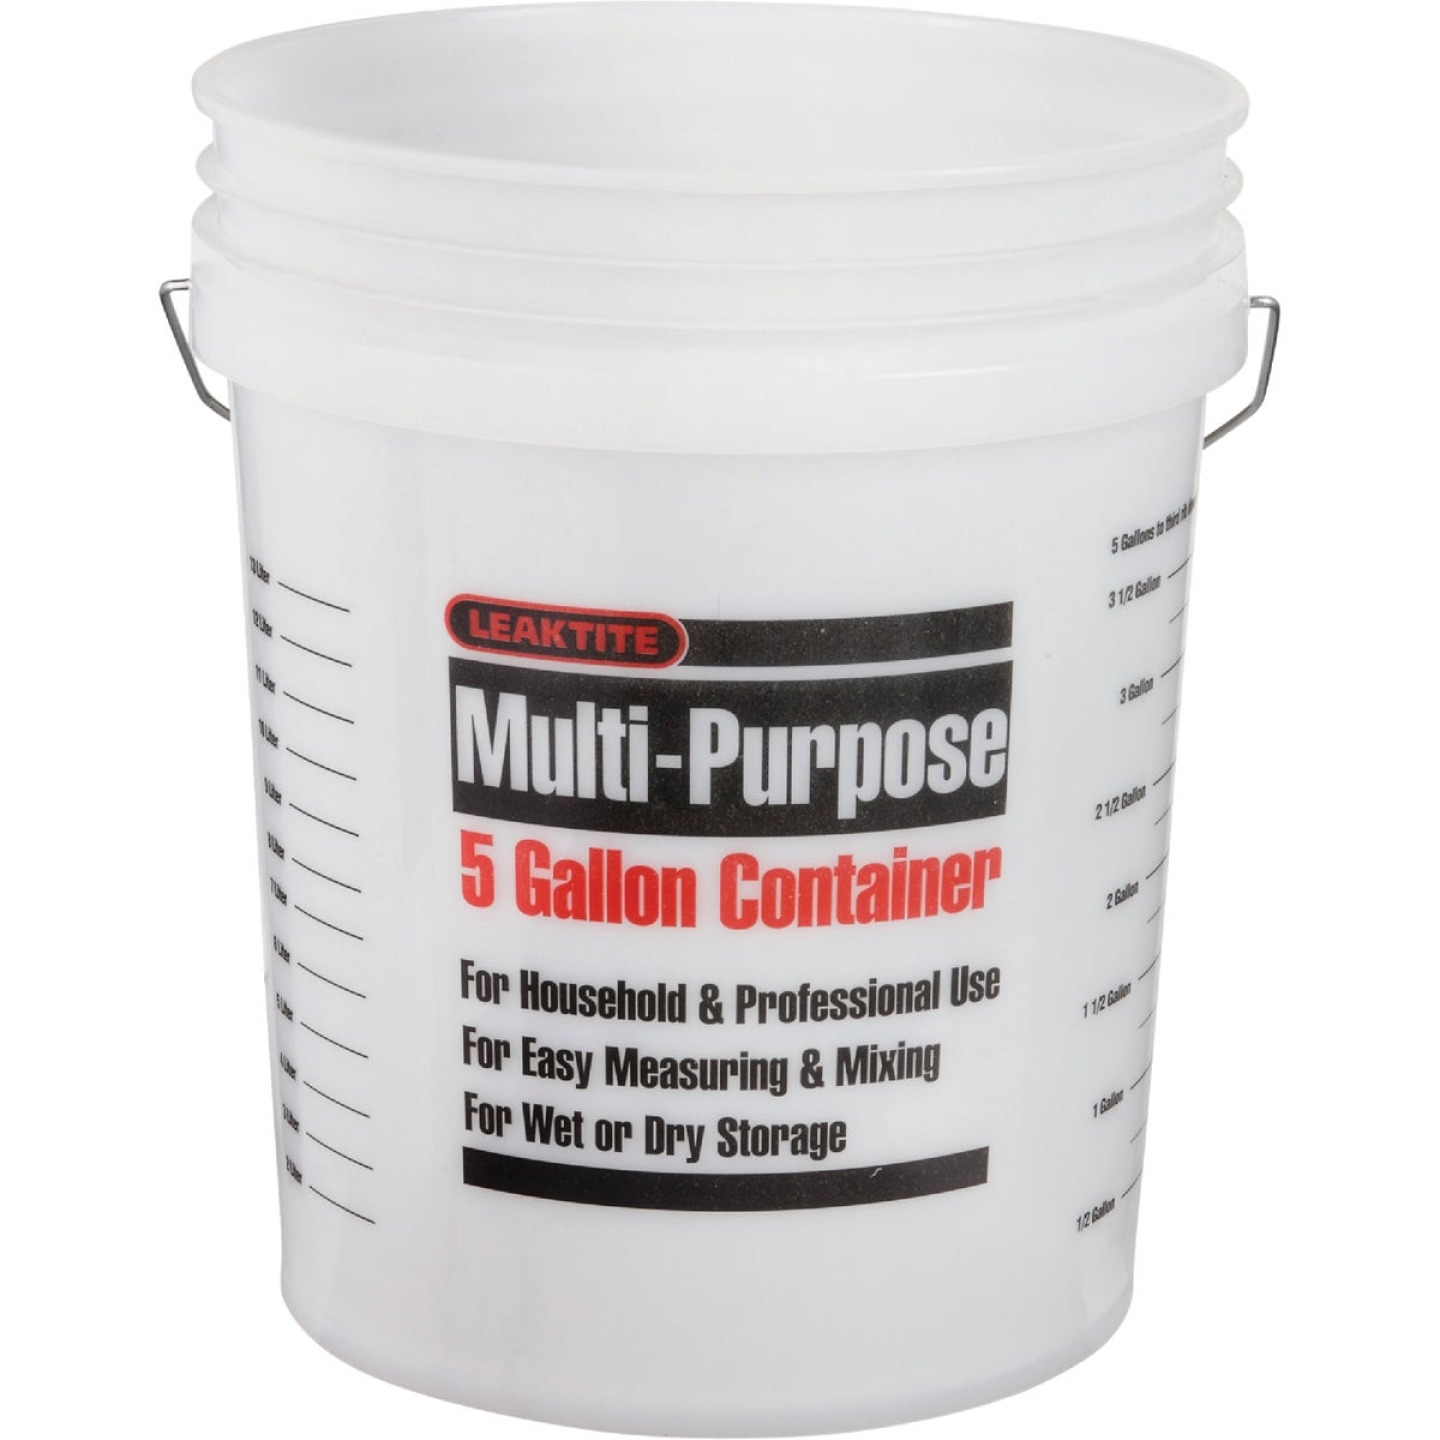 Leaktite 5 Gal. Clear Plastic Pail with Measuring Increments Image 1